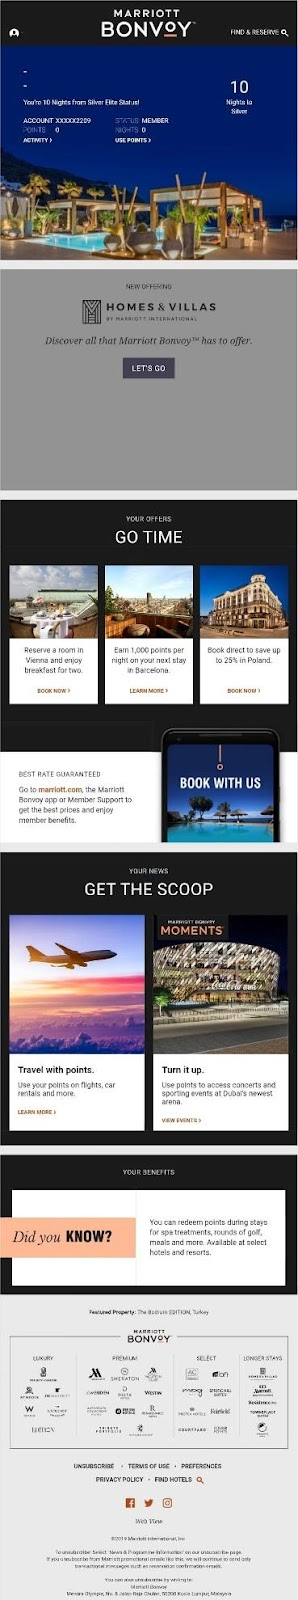 Marriott travel email example